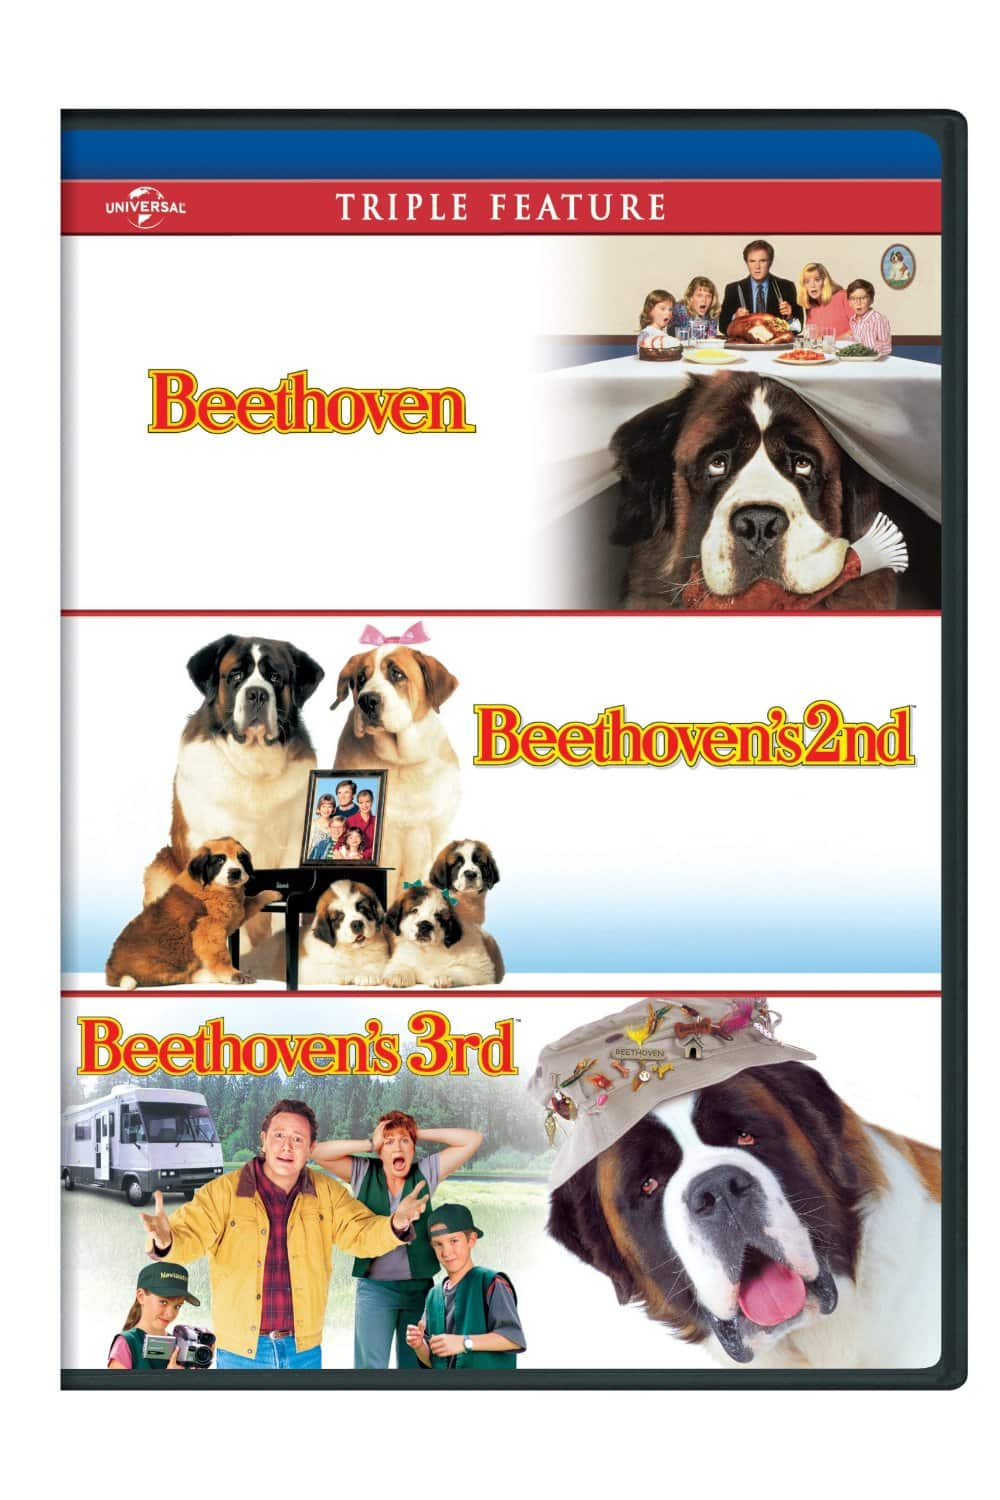 Beethoven / Beethoven's 2nd / Beethoven's 3rd Triple Feature (DVD). $3.99 + Free Shipping @ Amazon